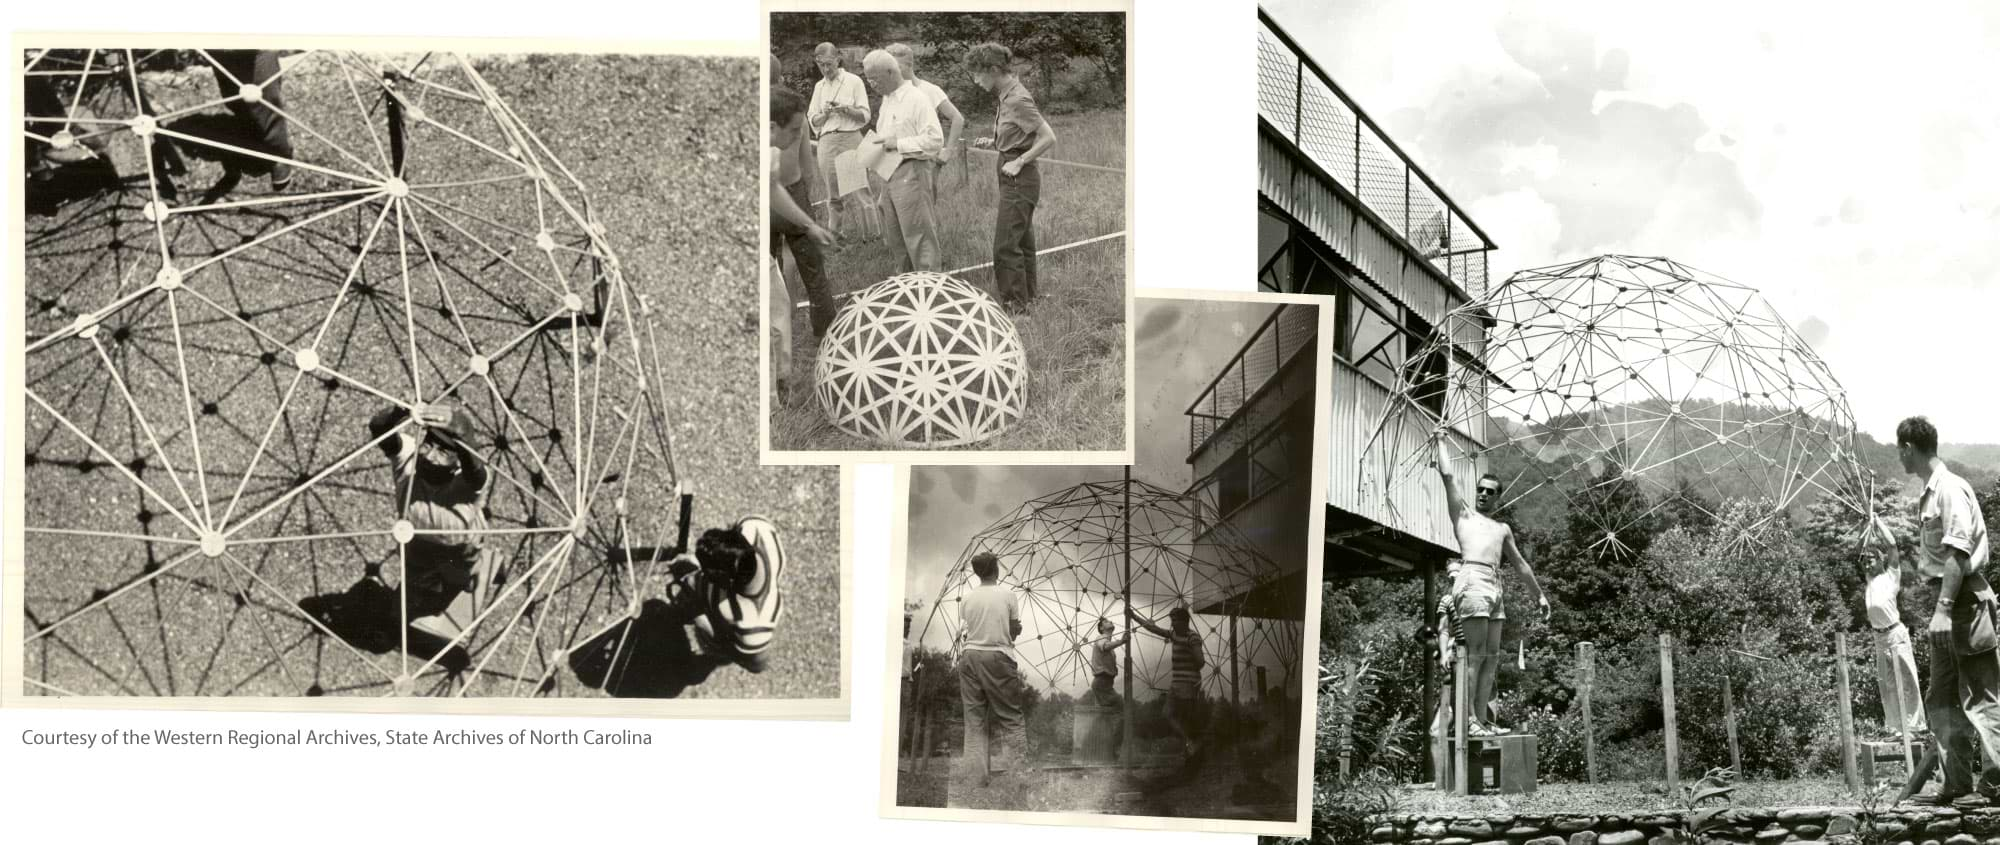 images - Courtesy of the Western Regional Archives, State Archives of North Carolina